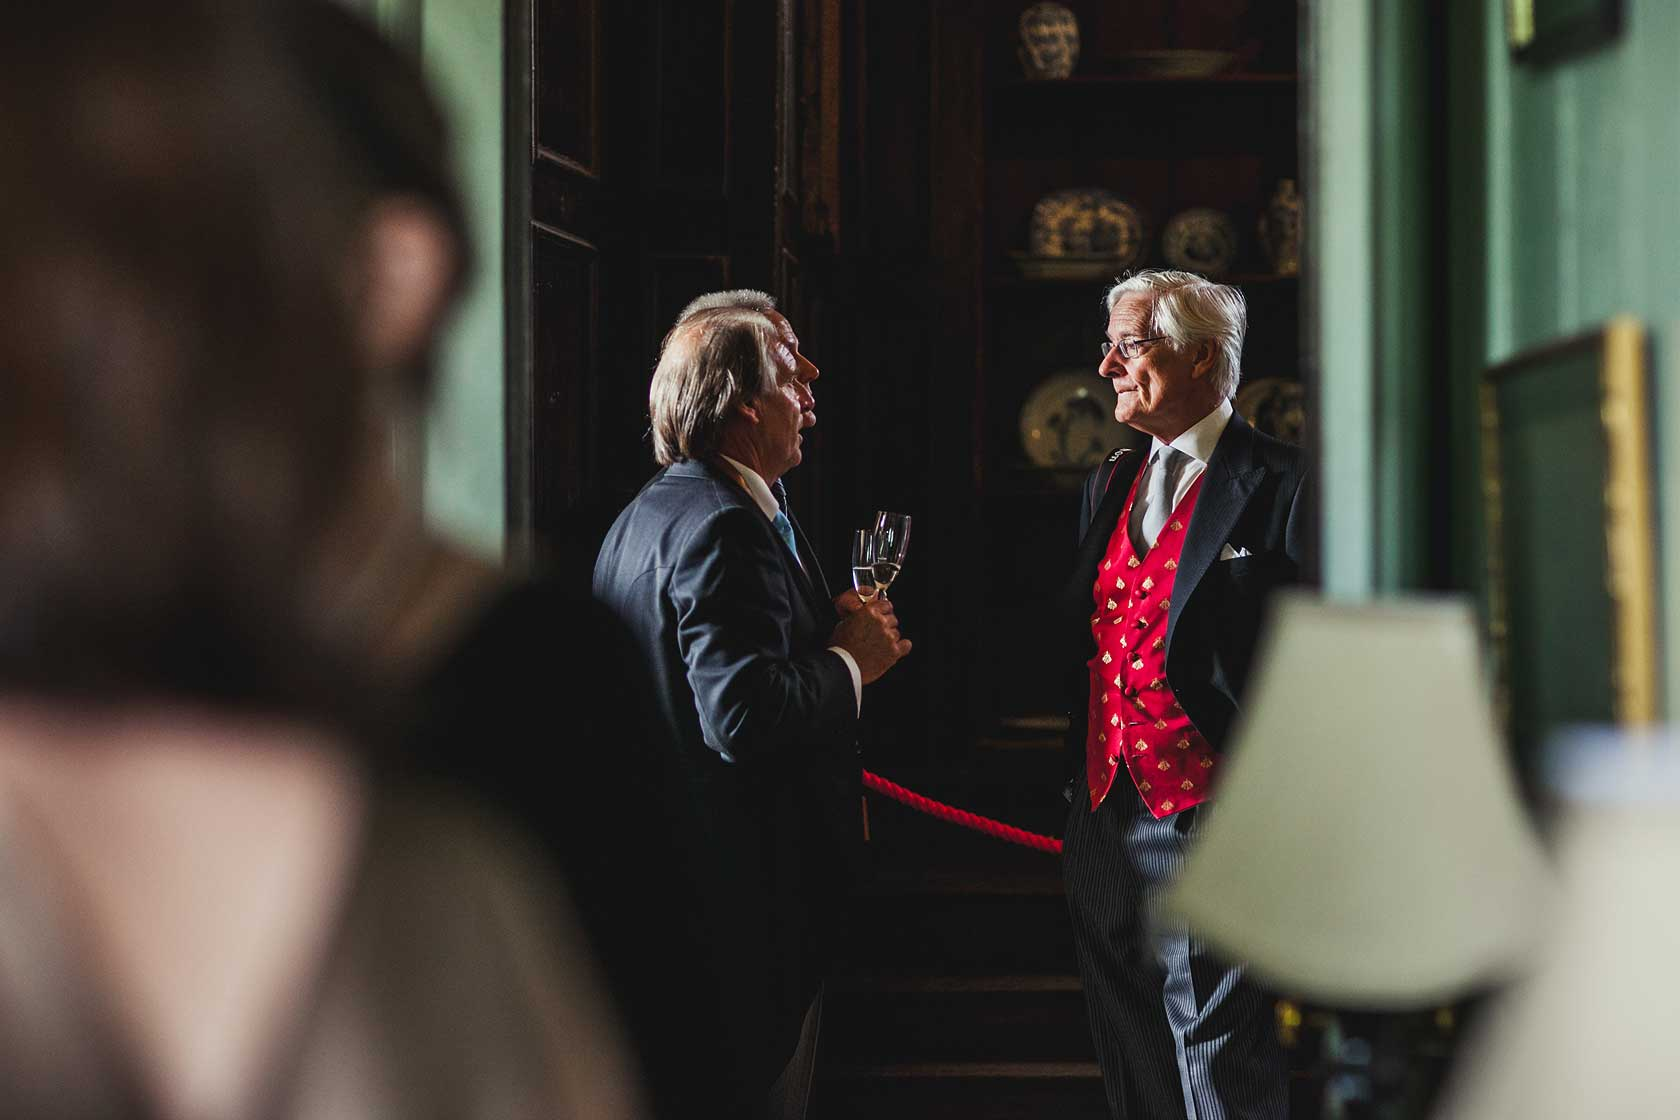 Reportage Wedding Photography at Brympton House